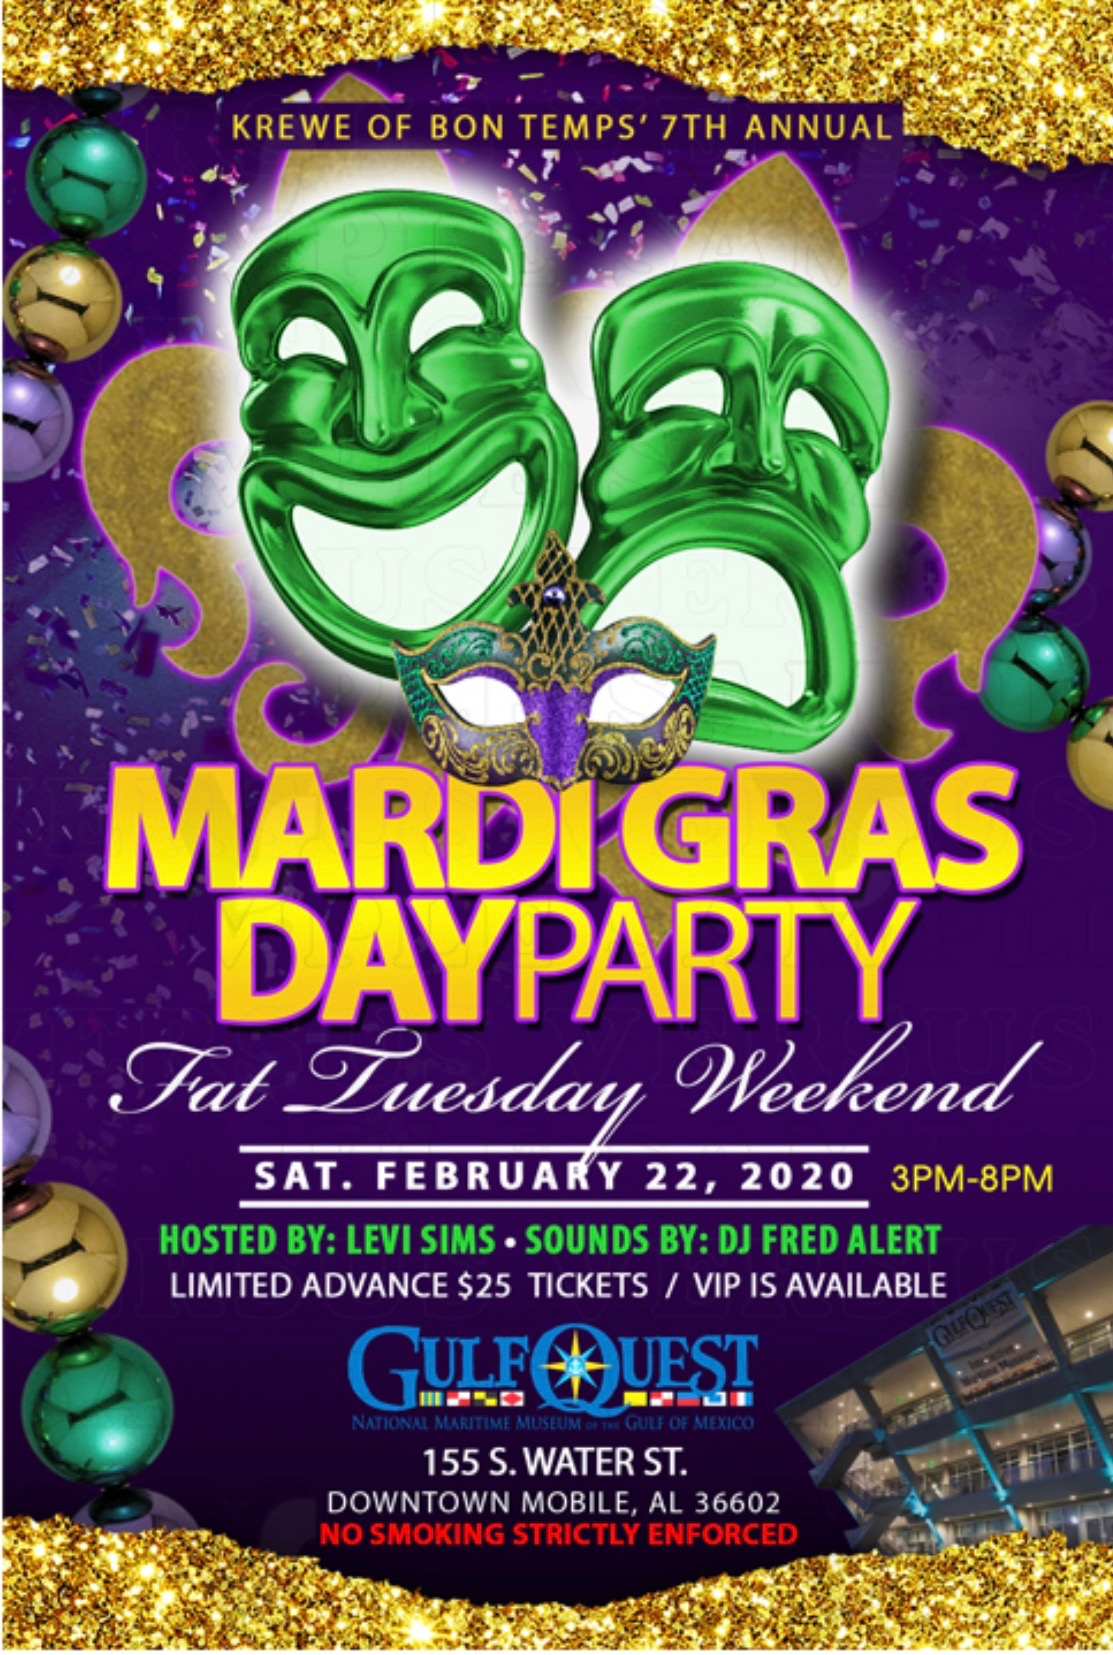 Mardi Gras Day Party